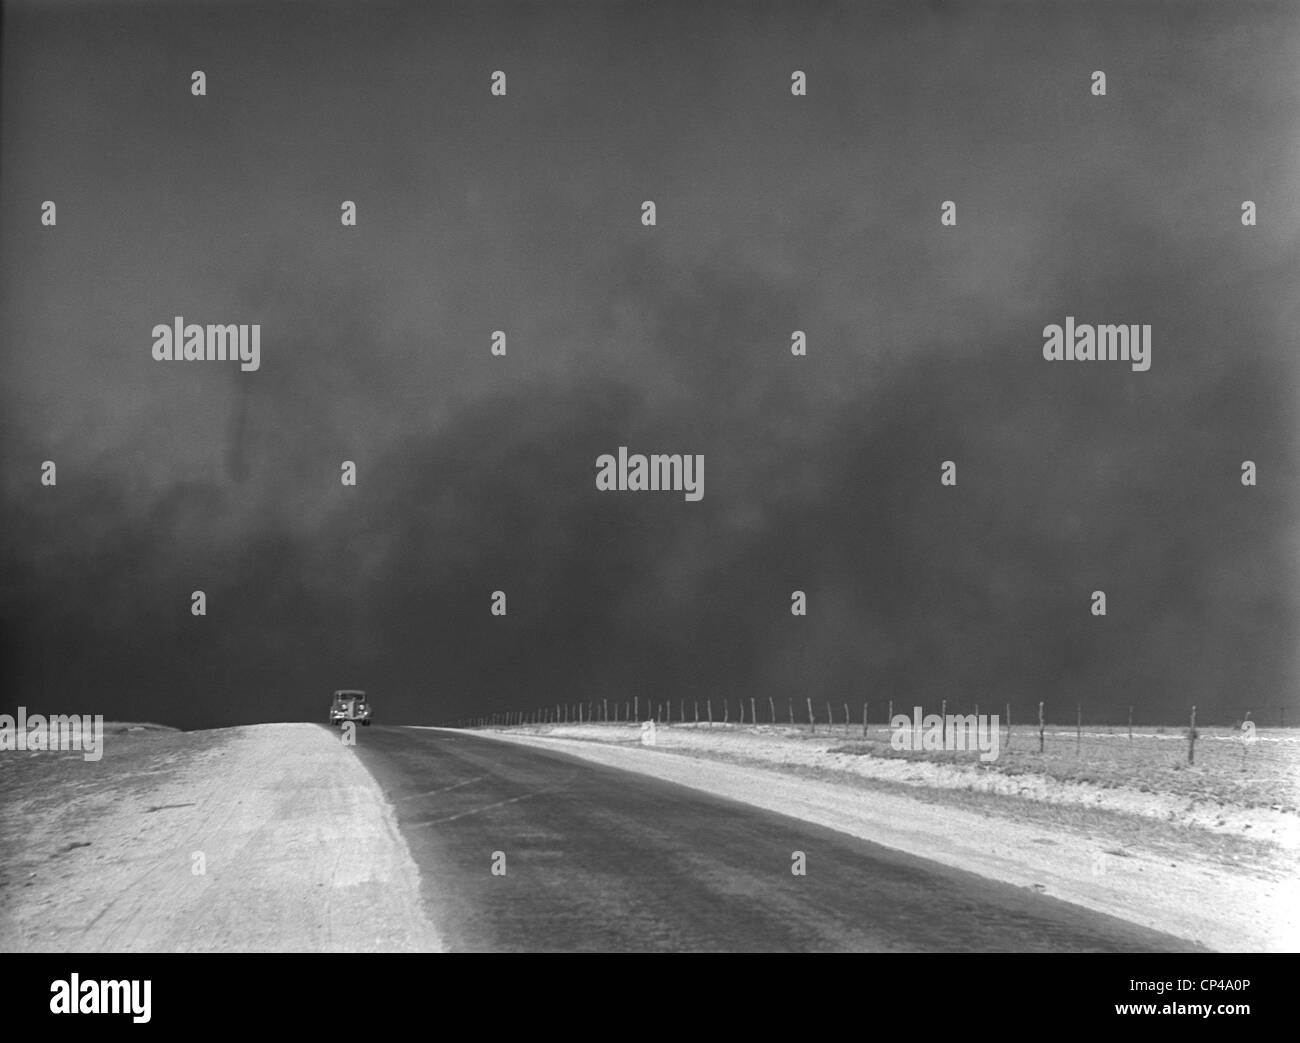 Heavy black clouds of dust rising over the Texas Panhandle. March 1936 photo by Arthur Rothstein. - Stock Image